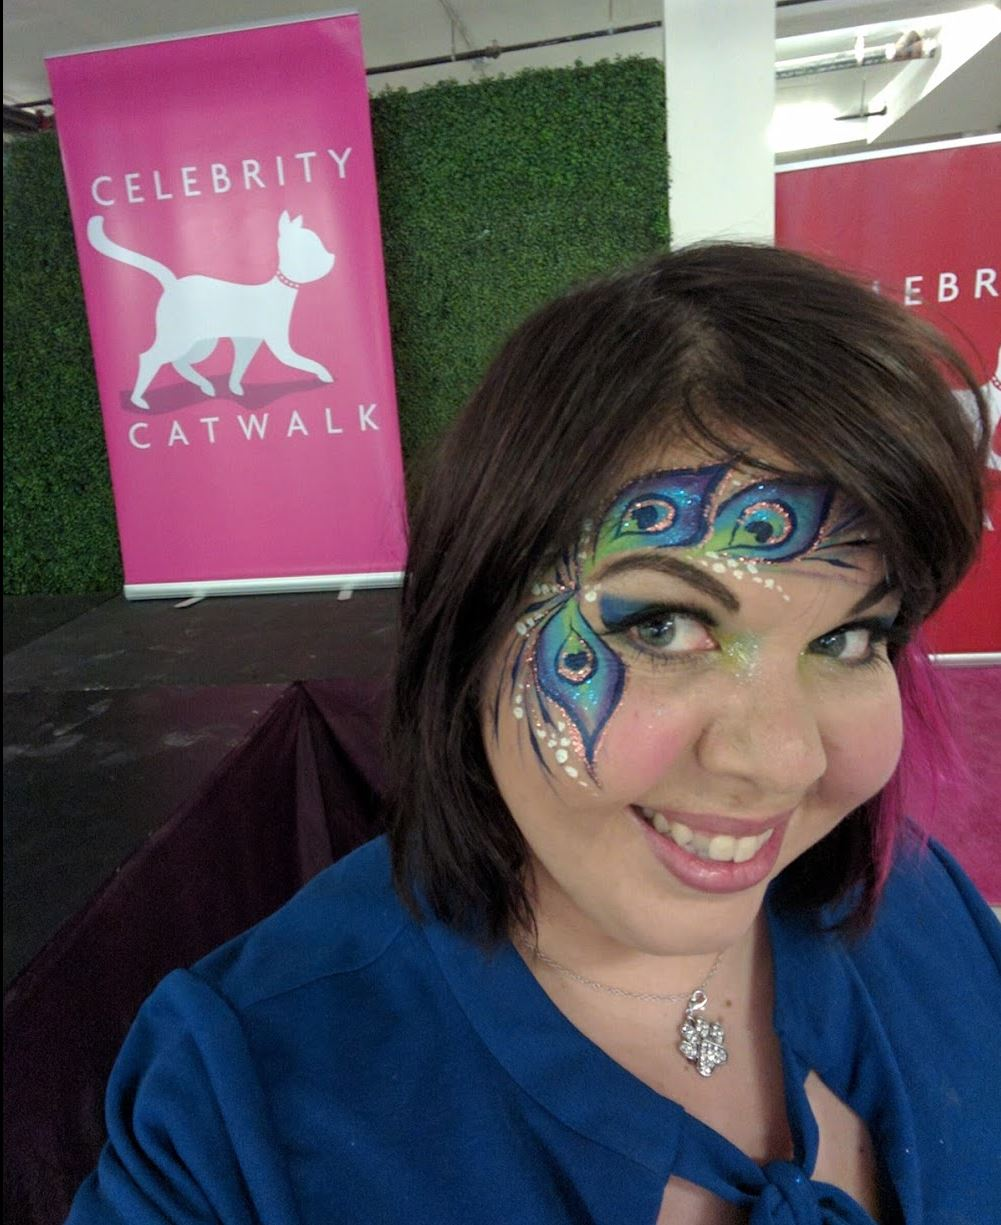 lenore volunteering at  celebrity catwalk  in nyc. to find out how you can donate to their cause,  click here for more info!